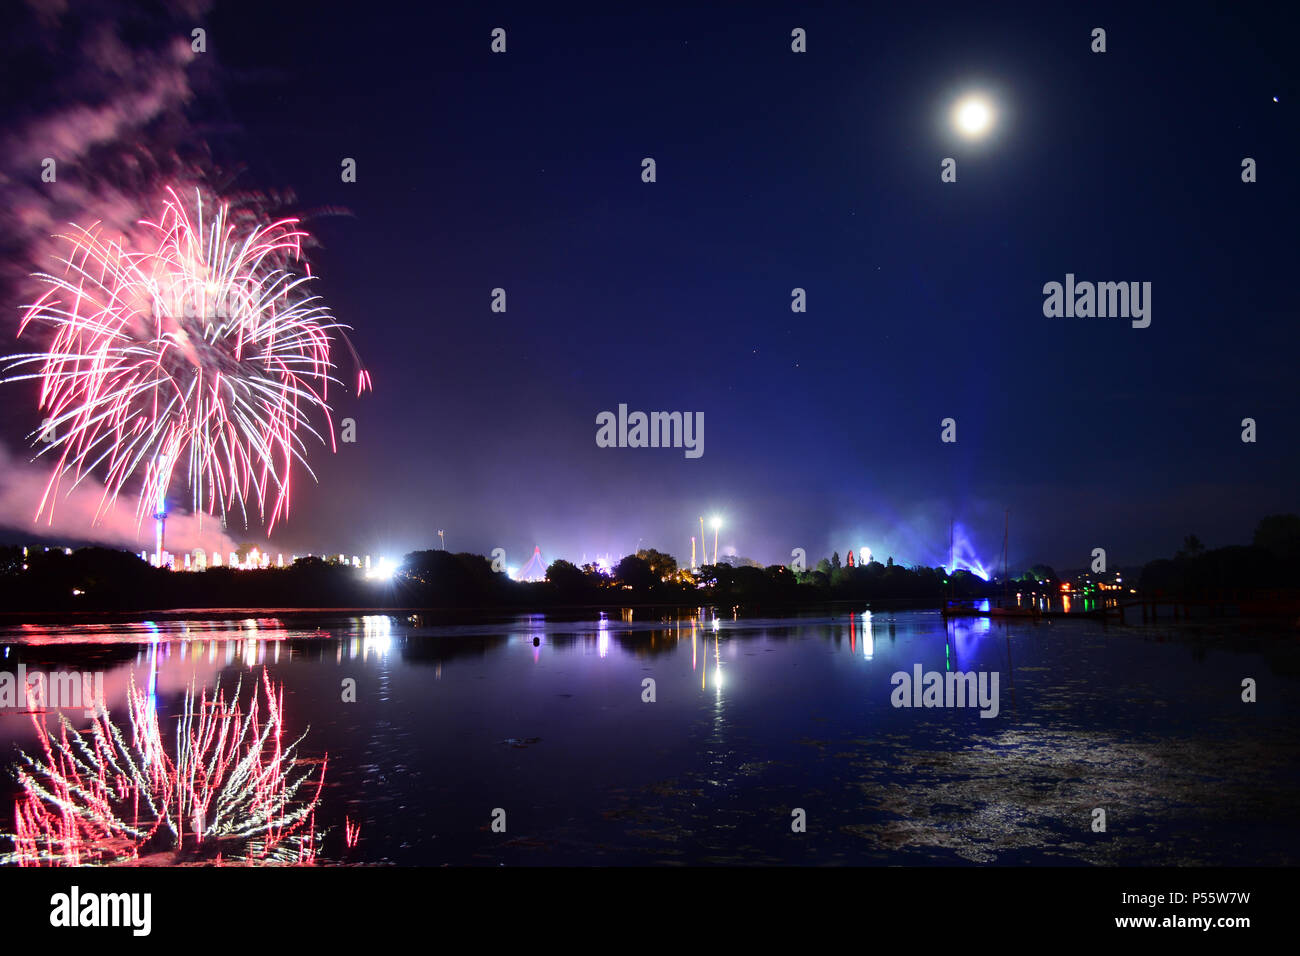 Newport, Isle of Wight, UK. Fireworks and a near full moon herald the end of the last day of the Isle of Wight Festival 2018. Stock Photo